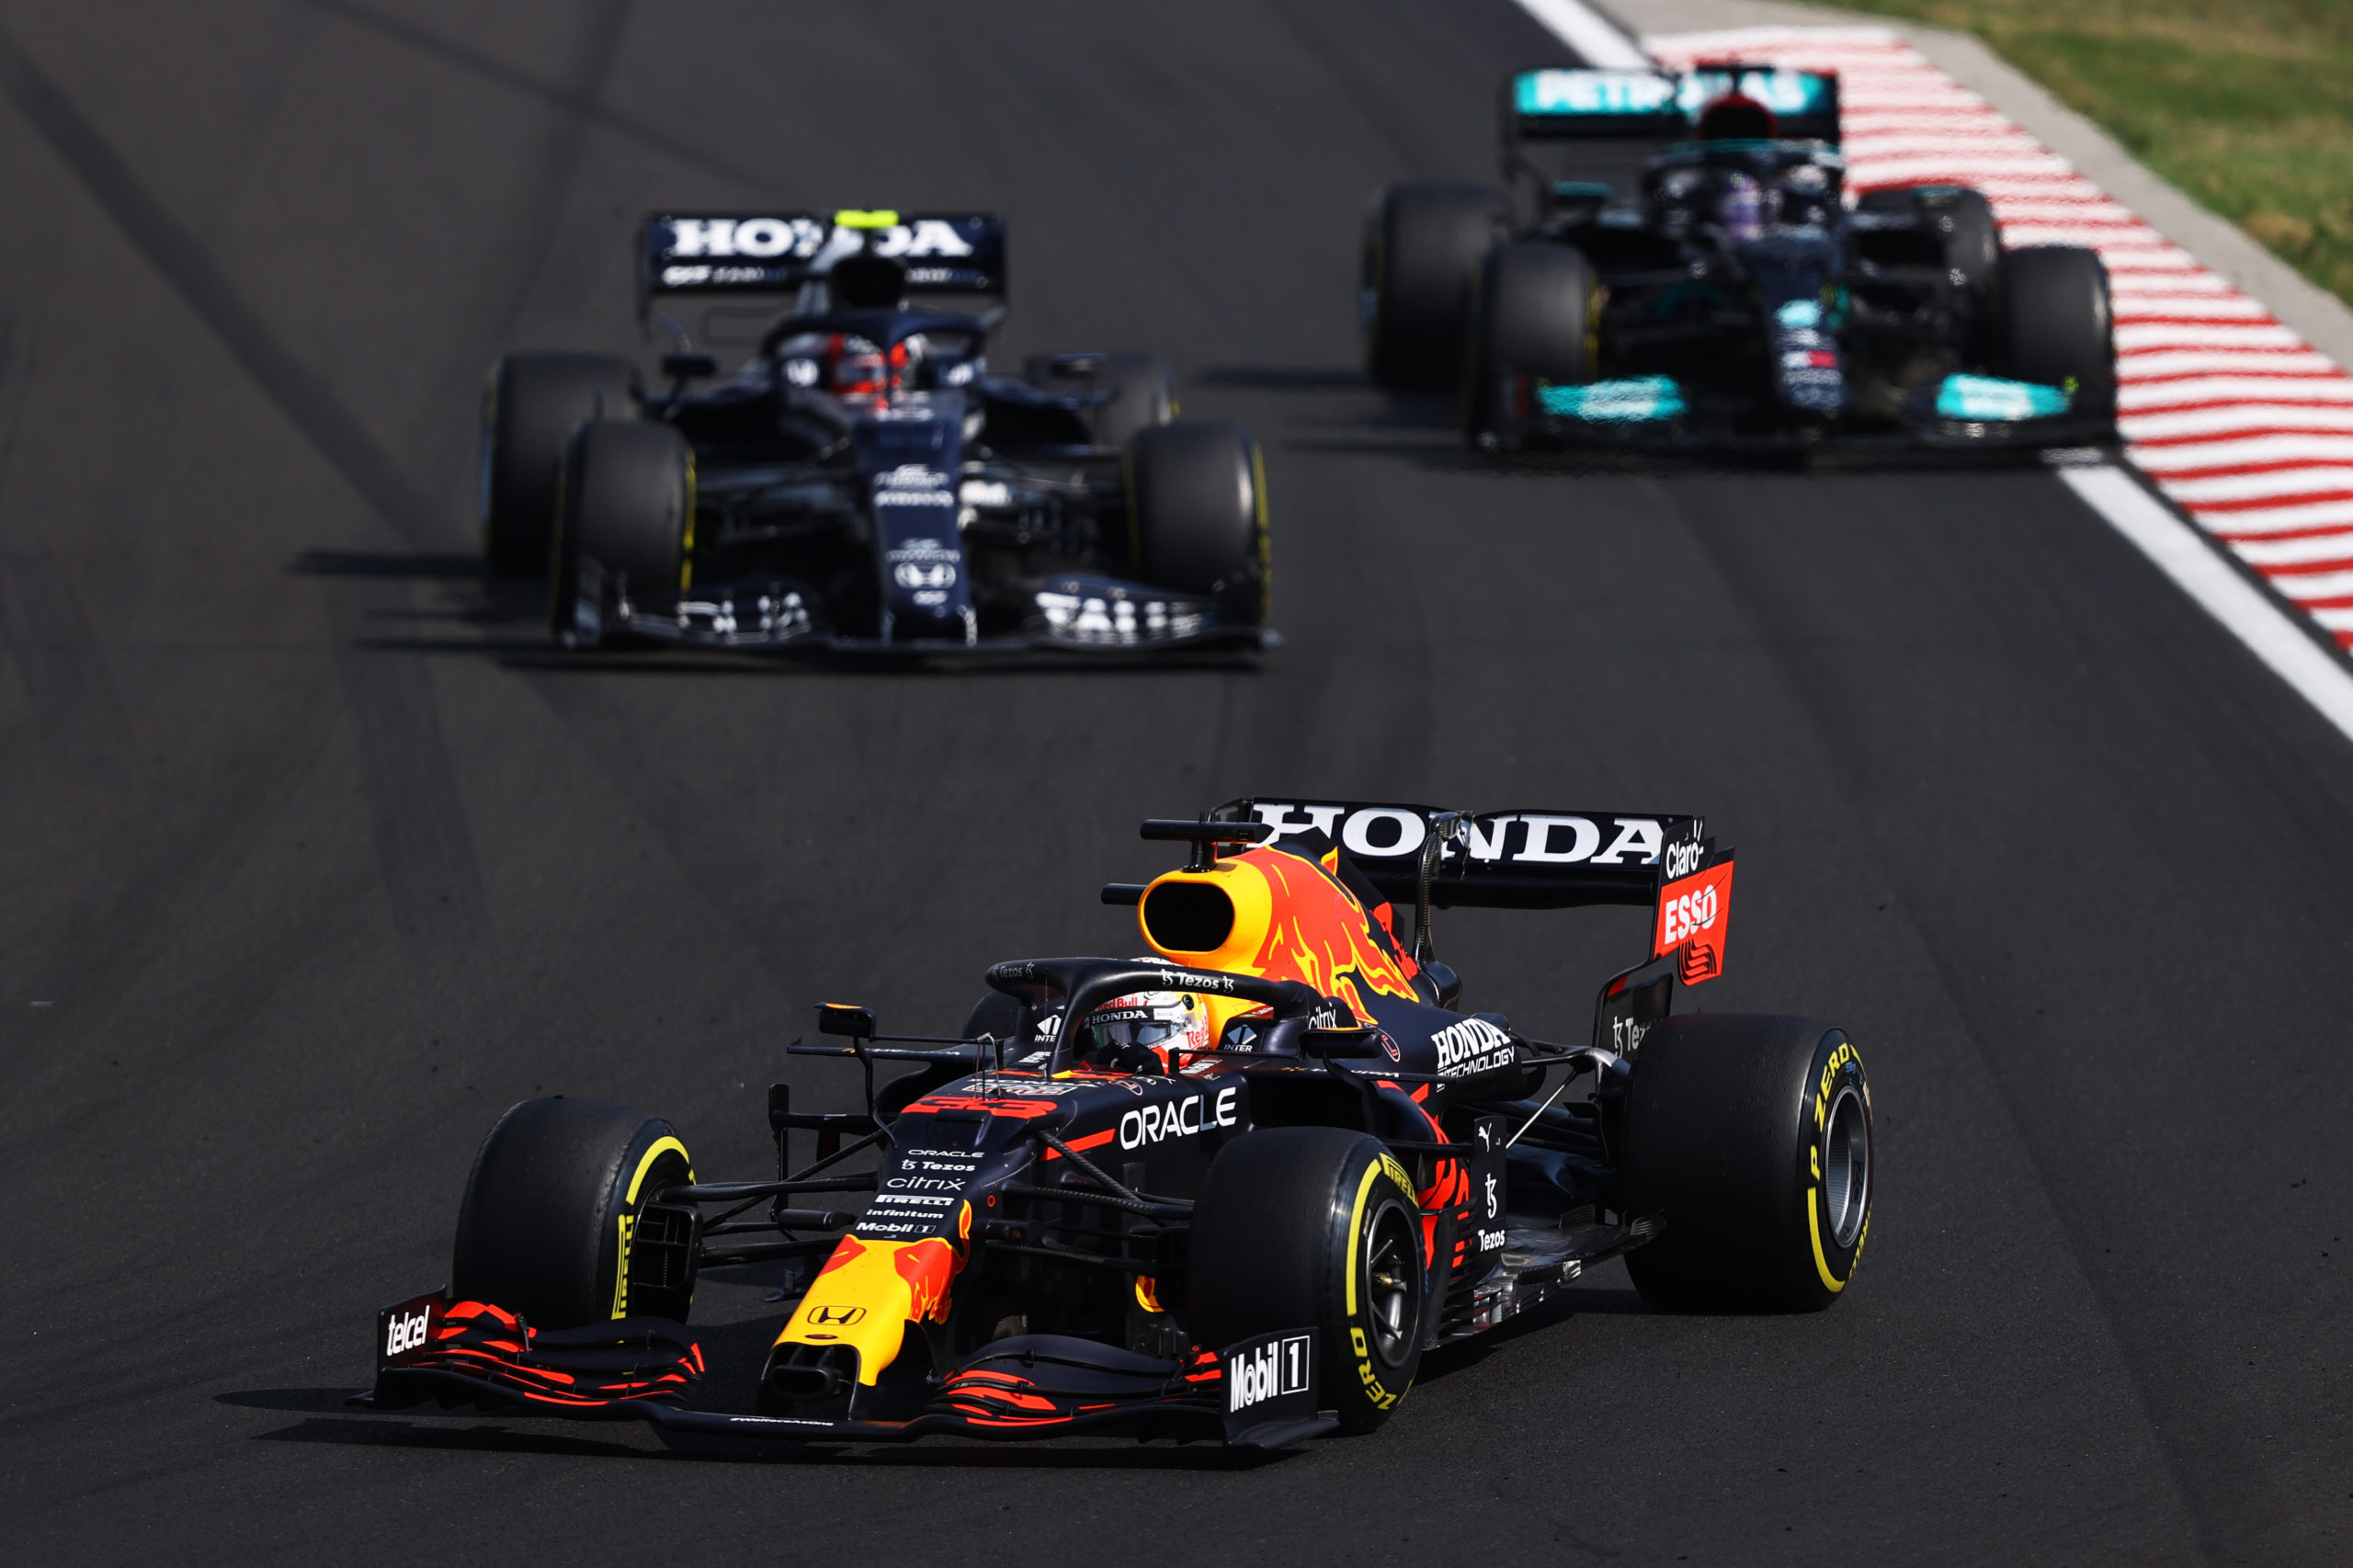 BUDAPEST, HUNGARY - AUGUST 01: Max Verstappen of the Netherlands driving the (33) Red Bull Racing RB16B Honda leads Pierre Gasly of France driving the (10) Scuderia AlphaTauri AT02 Honda and Lewis Hamilton of Great Britain driving the (44) Mercedes AMG Petronas F1 Team Mercedes W12 during the F1 Grand Prix of Hungary at Hungaroring on August 01, 2021 in Budapest, Hungary. (Photo by Bryn Lennon/Getty Images) // Getty Images / Red Bull Content Pool  // SI202108010277 // Usage for editorial use only //